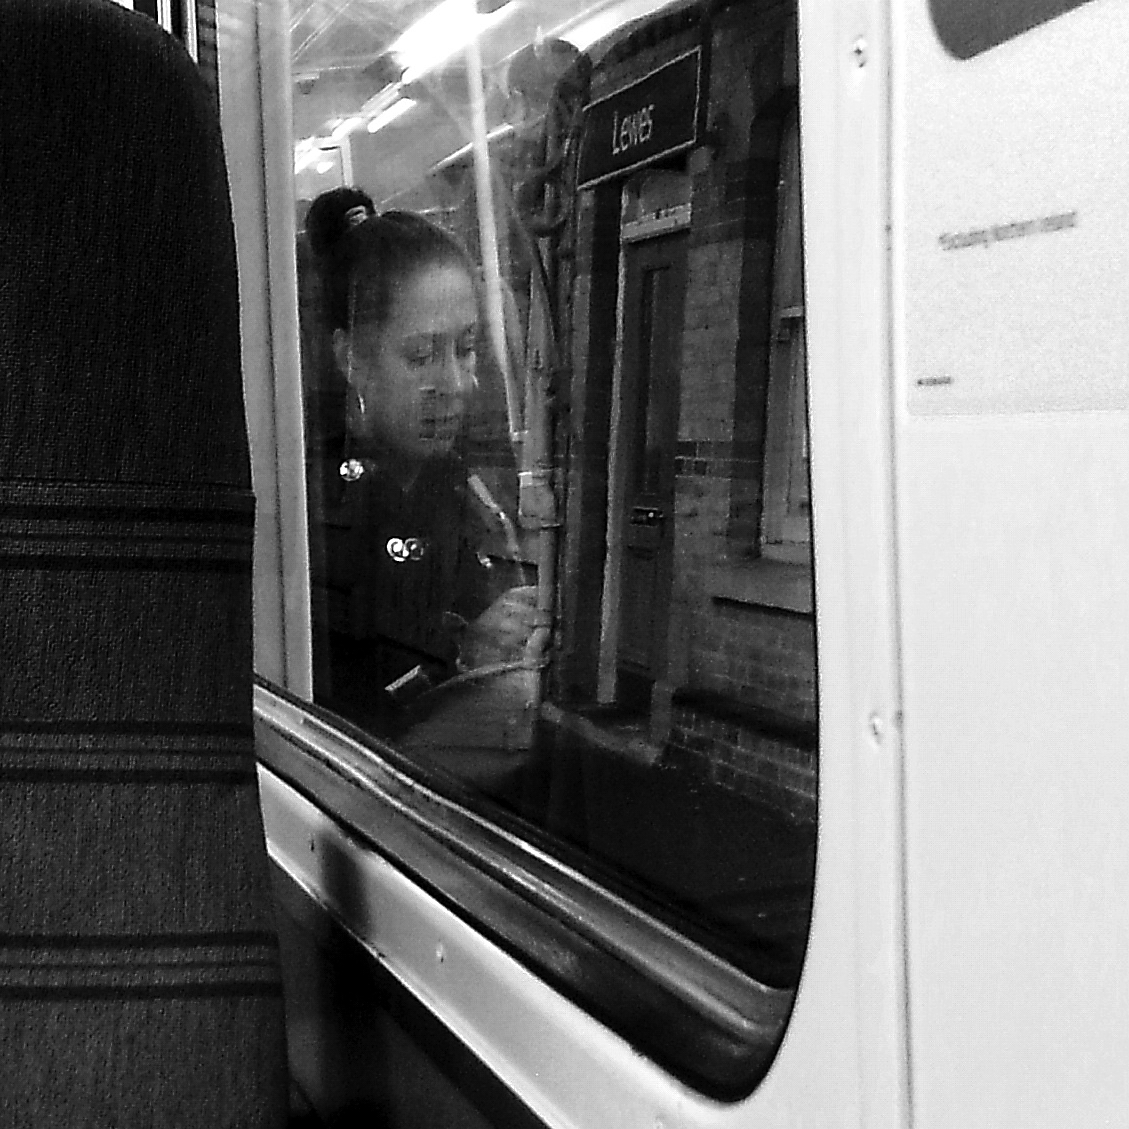 Commute 2 - Woman distorted in window